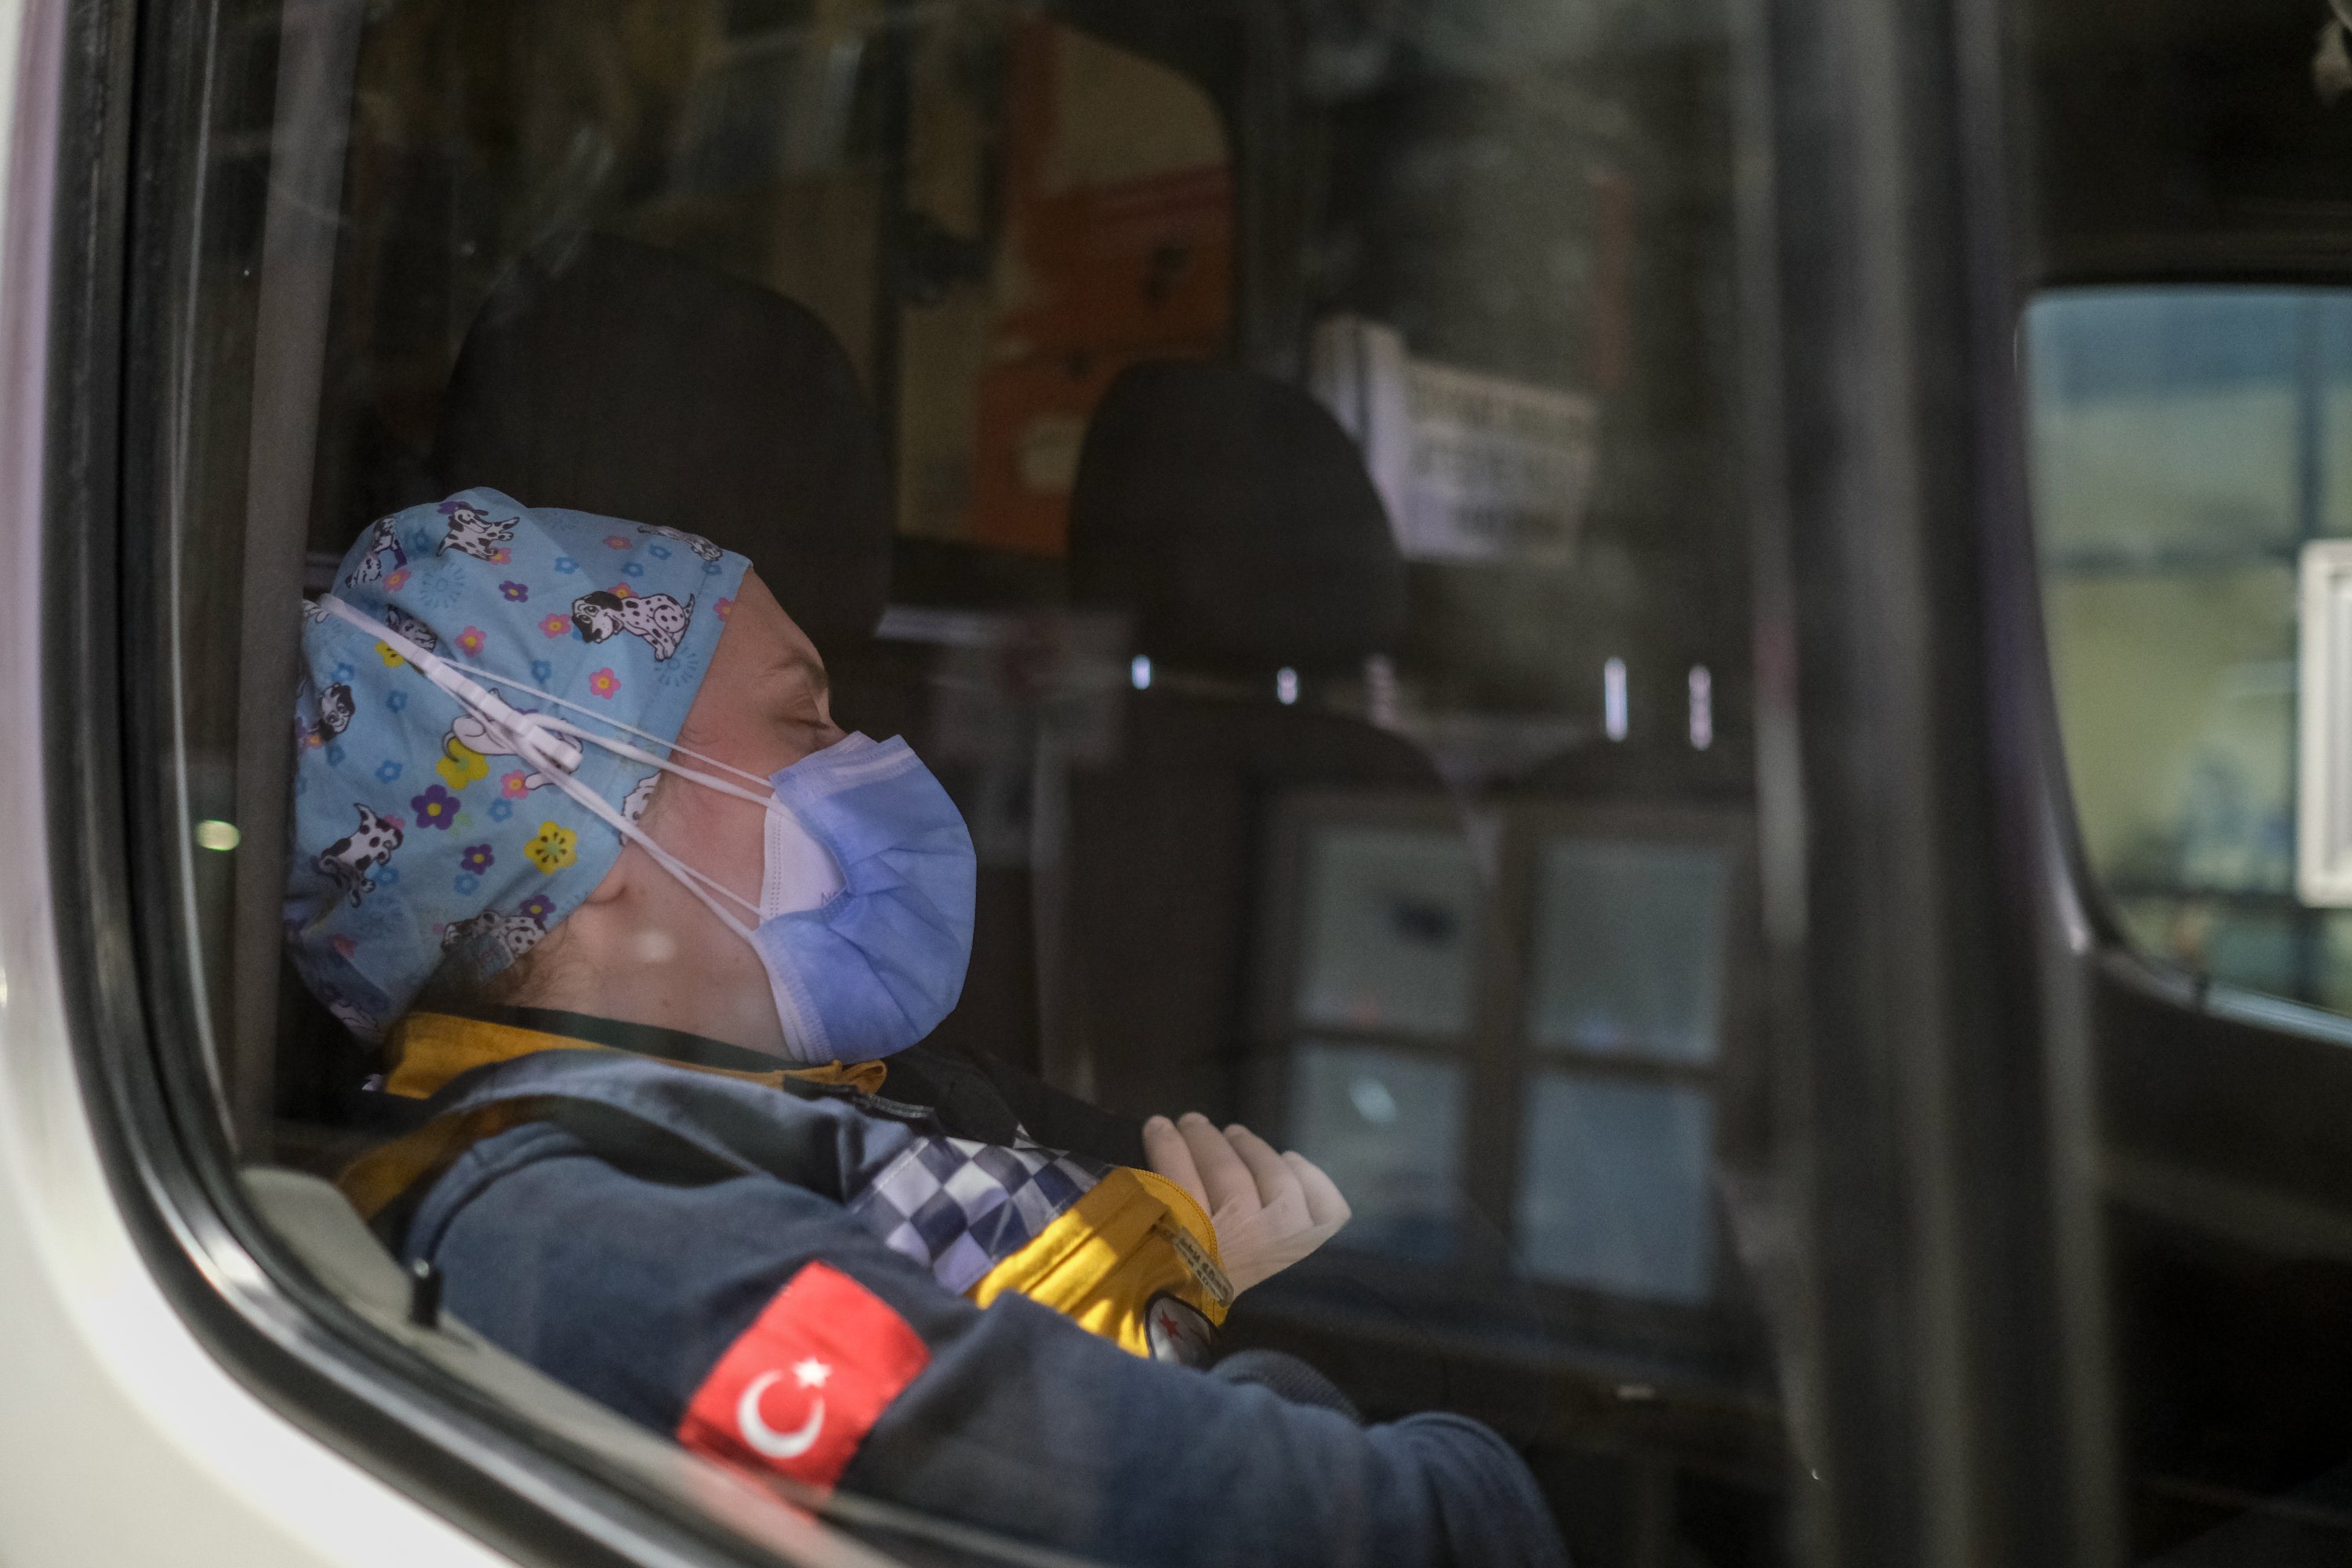 EMT Betül Ocak naps inside the ambulance during a break, in Istanbul, Turkey, Dec. 4, 2020. (PHOTO BY UĞUR YILDIRIM)